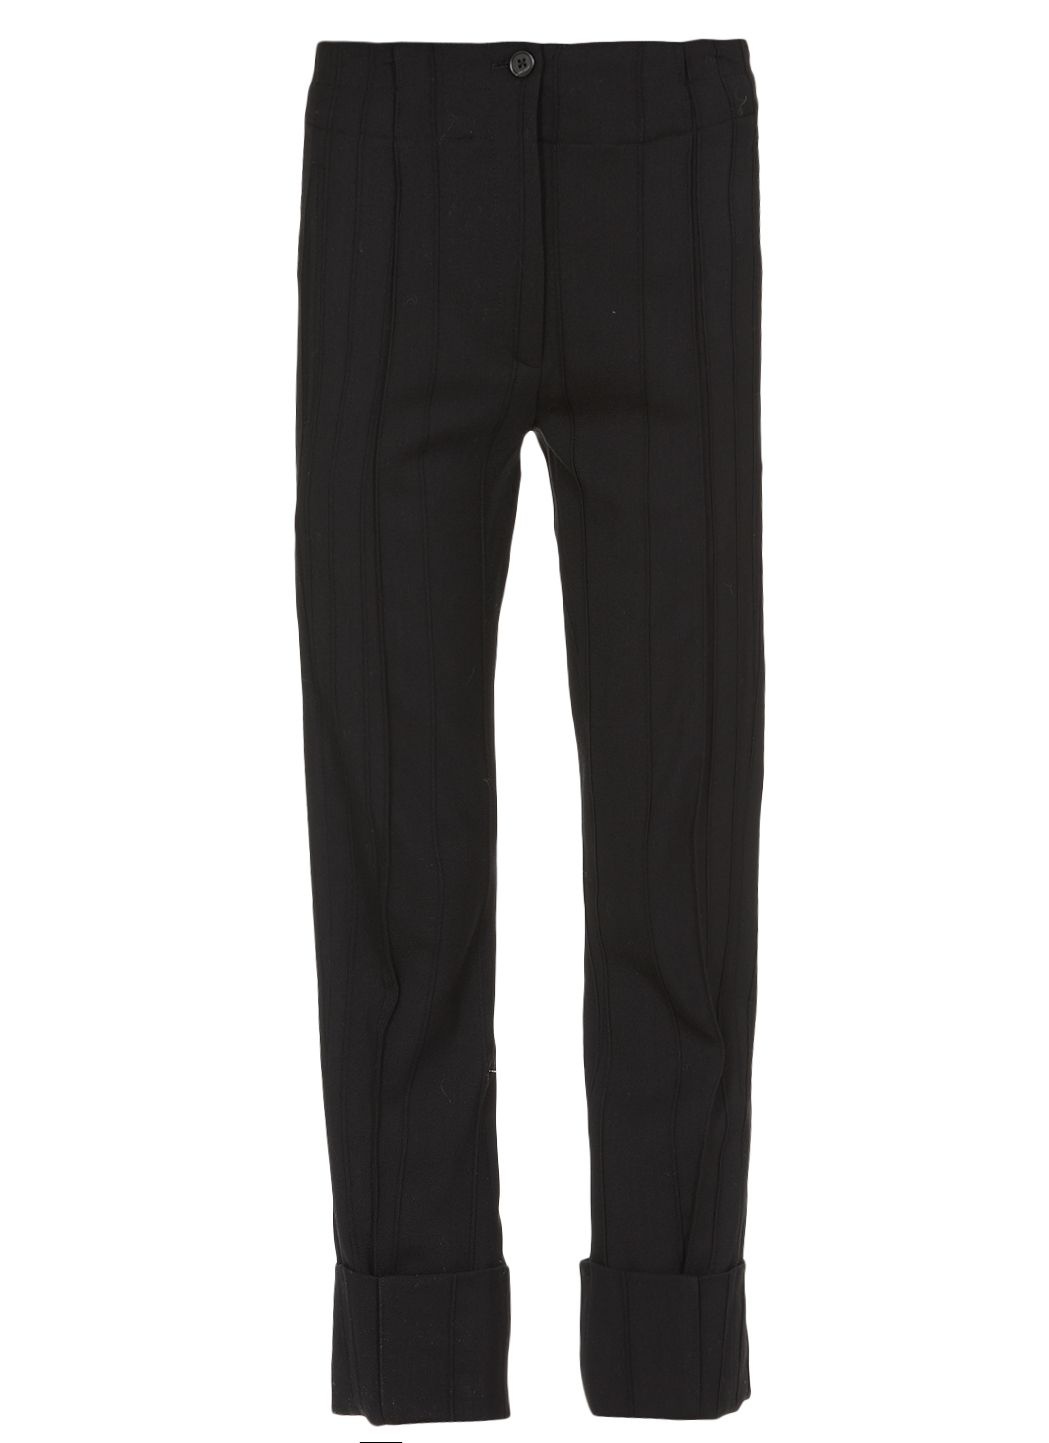 Trousers cather black